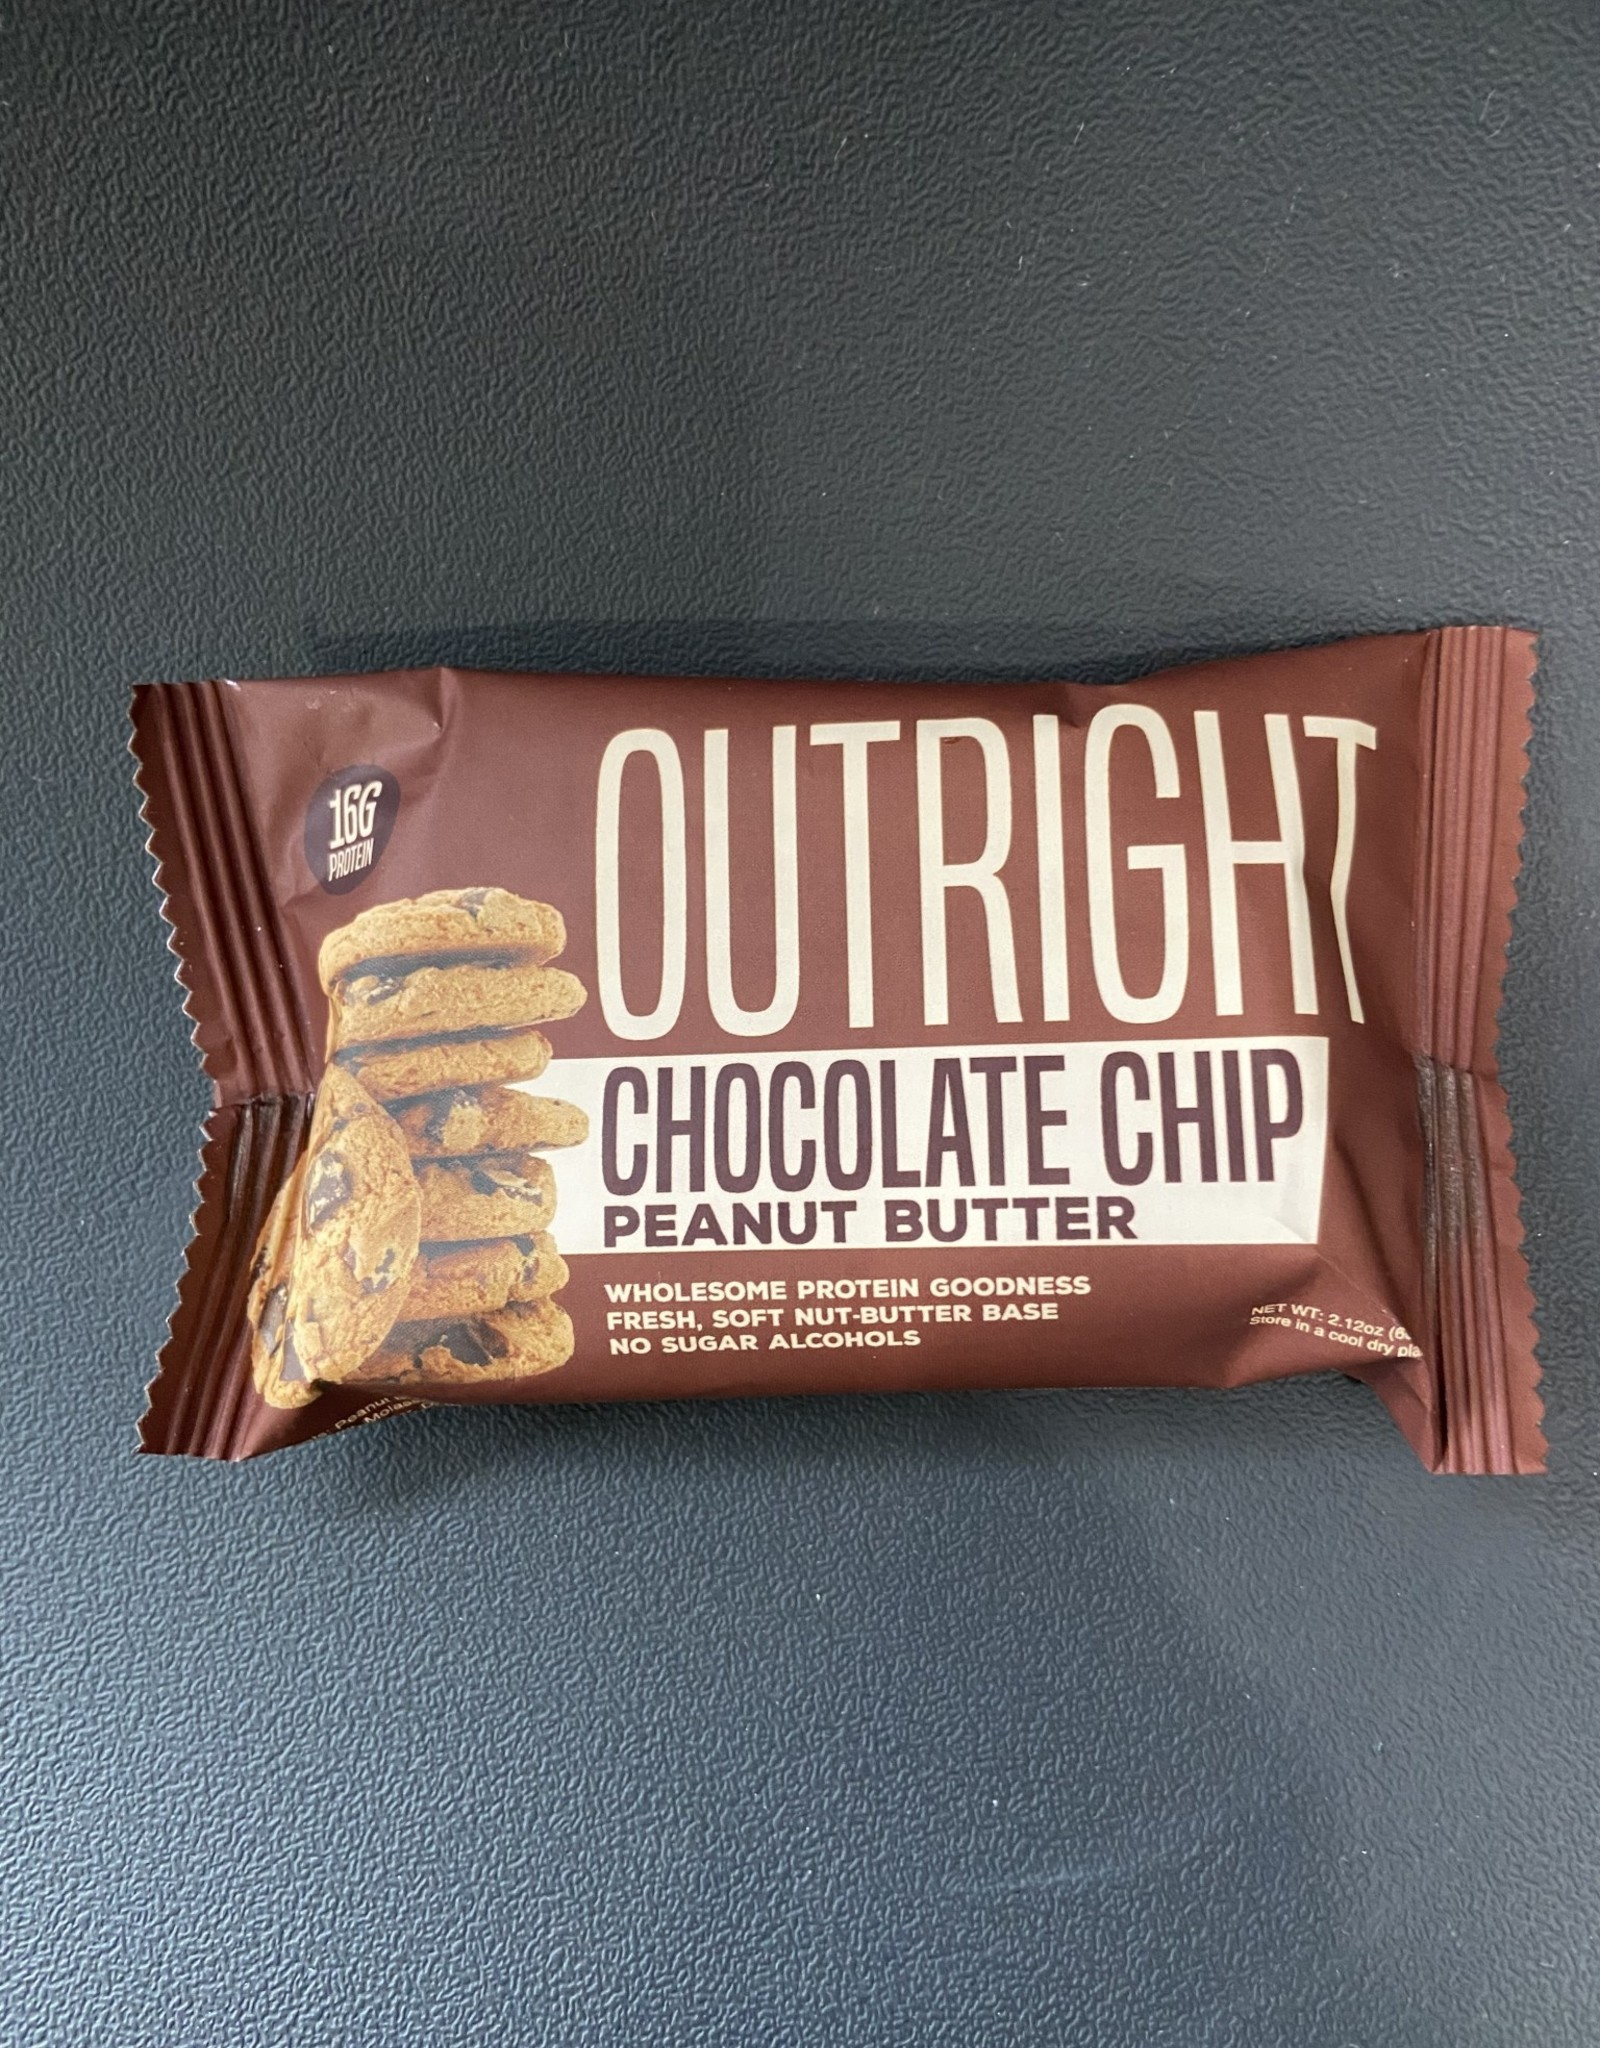 Outright Outright - Baked Bars - Chocolate Chip Peanut Butter, 60g